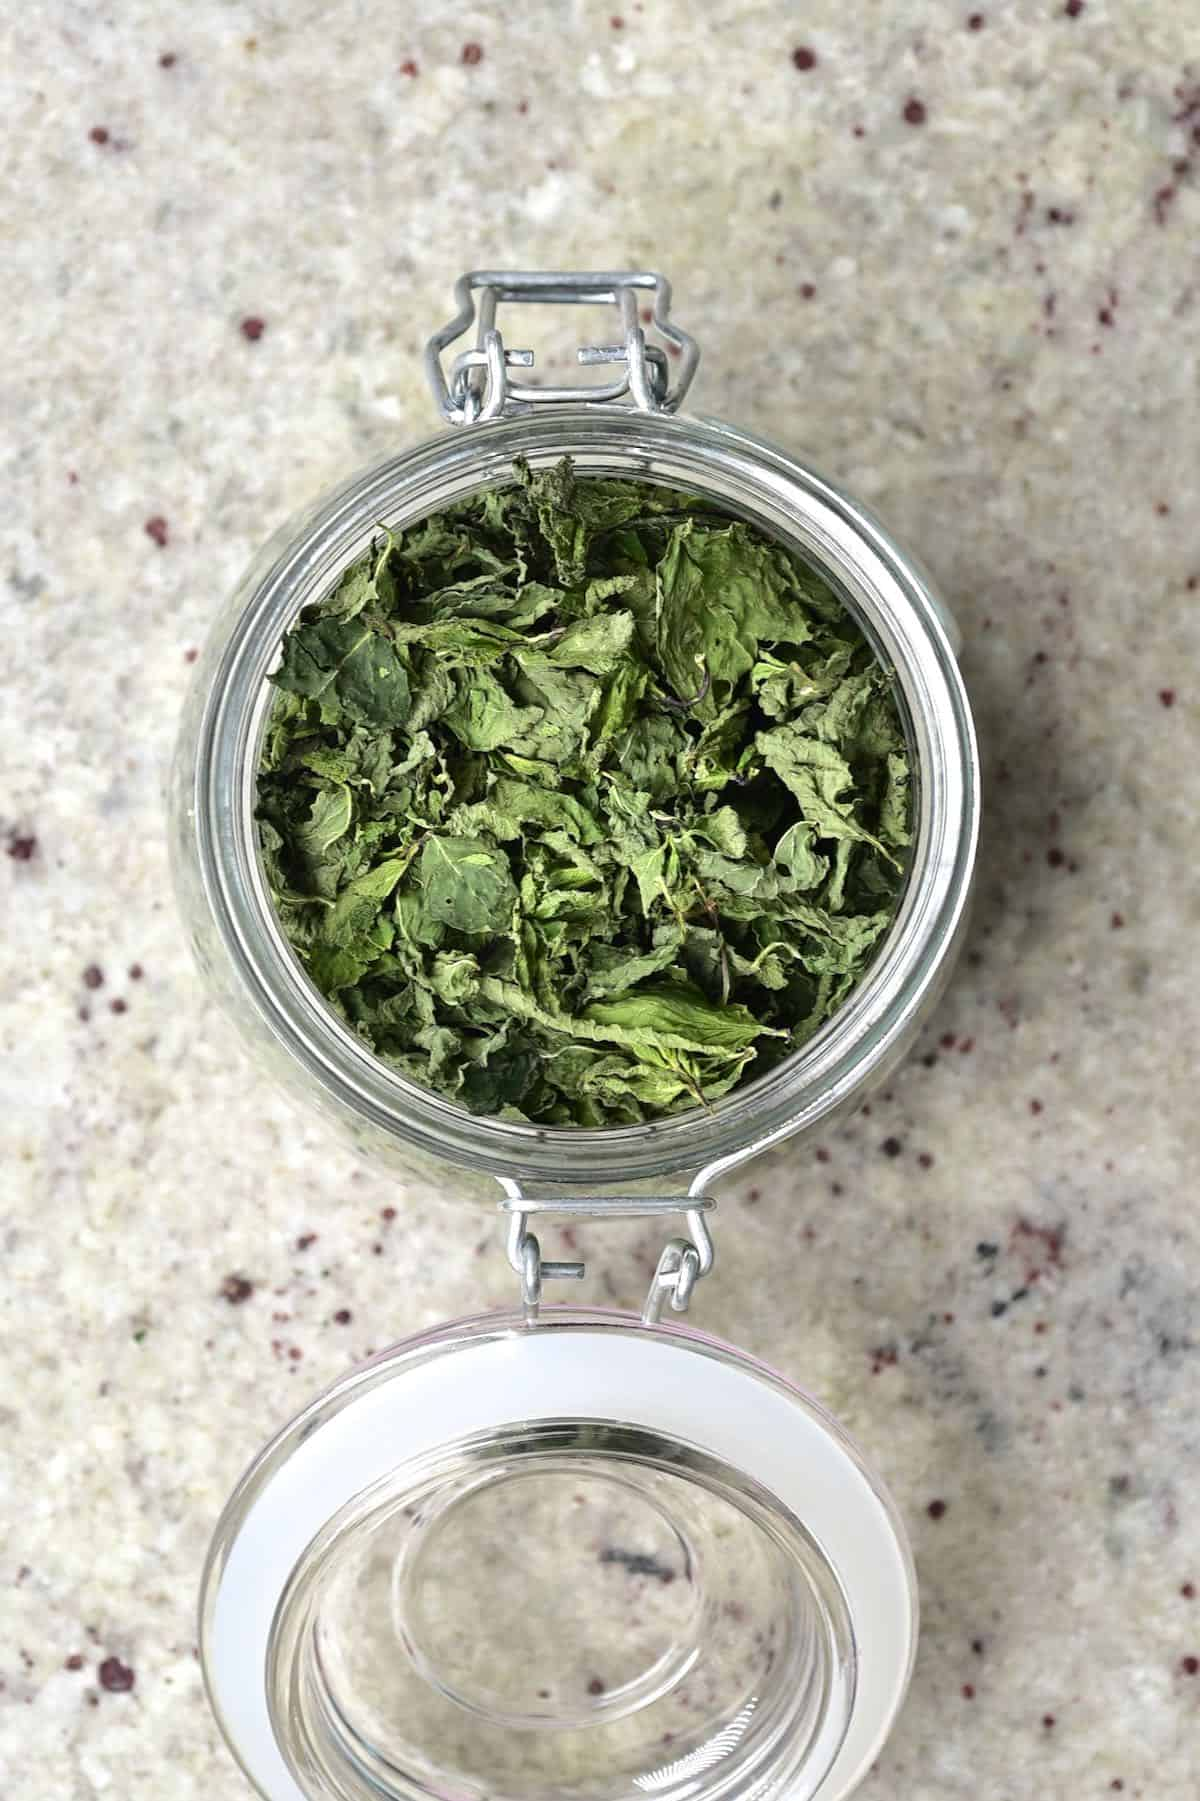 An open jar with dried mint leaves